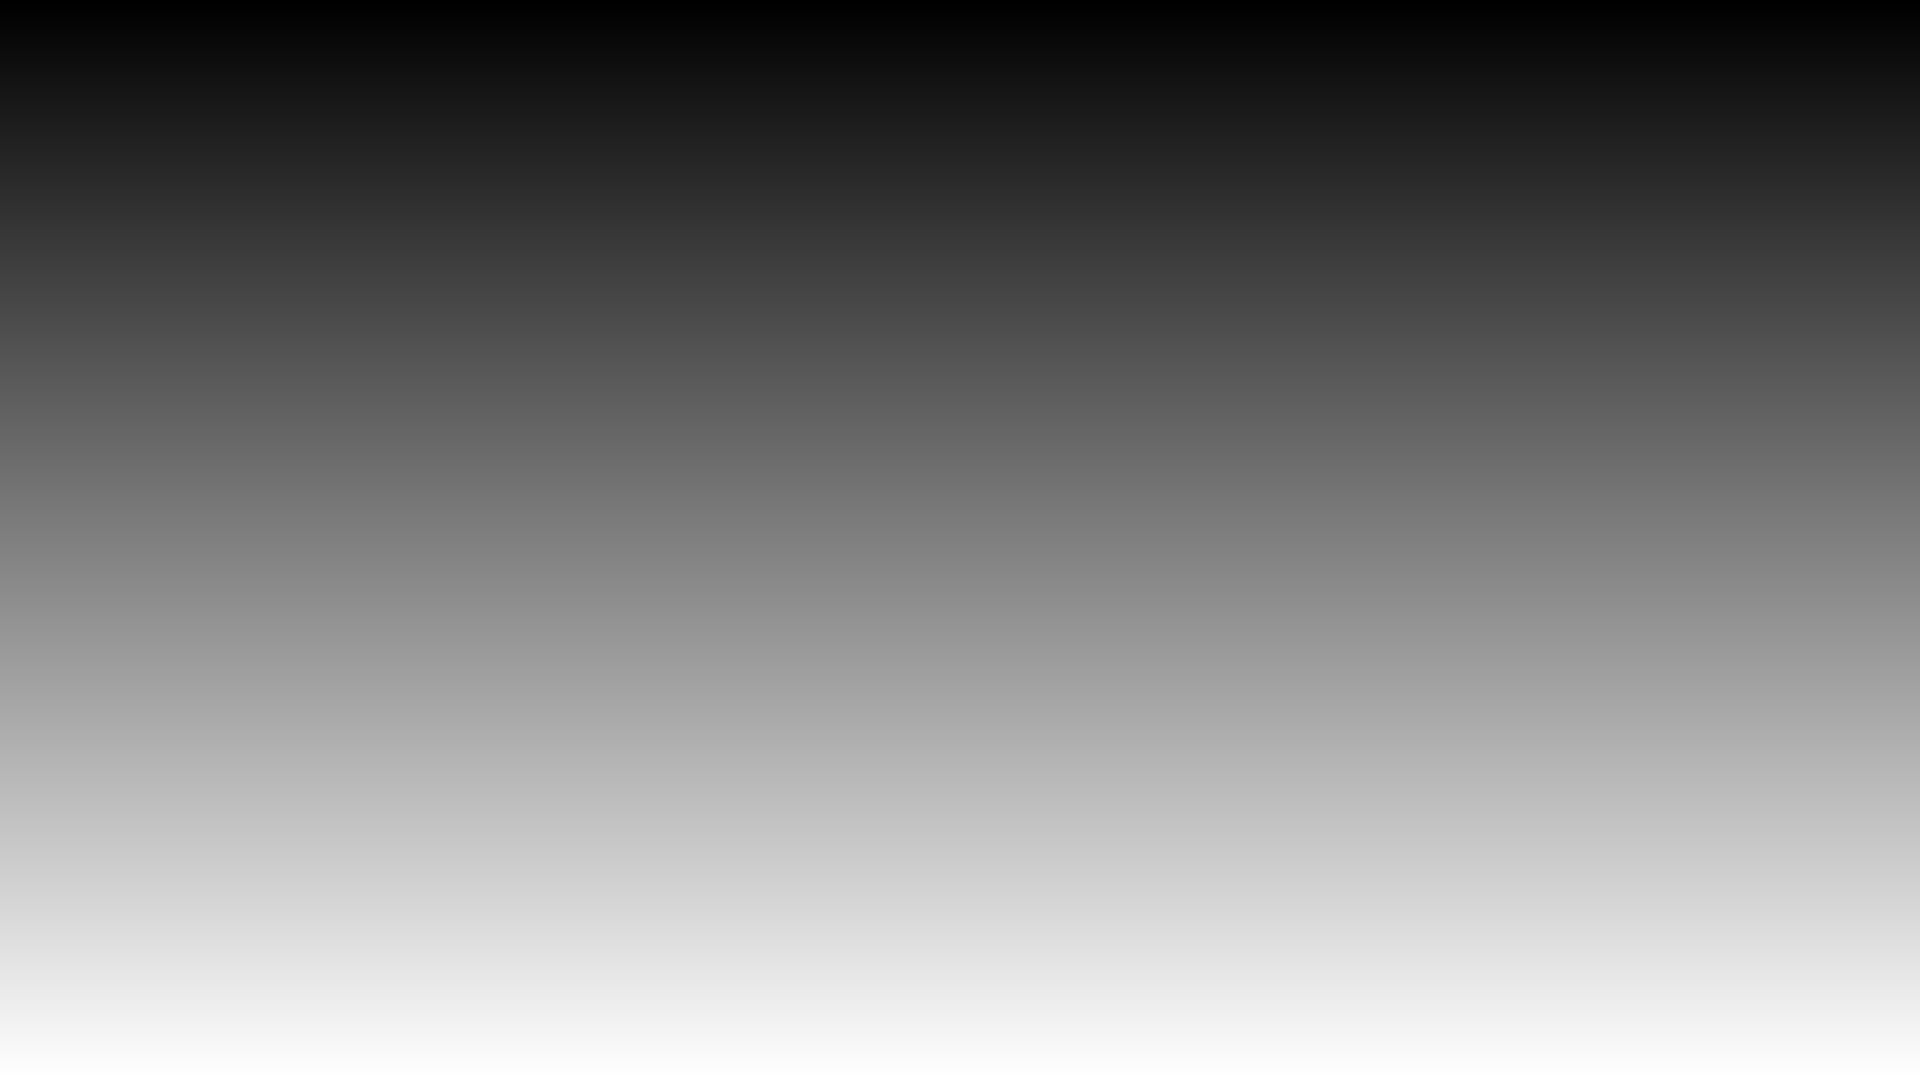 Light Grey Free Wallpaper and Background